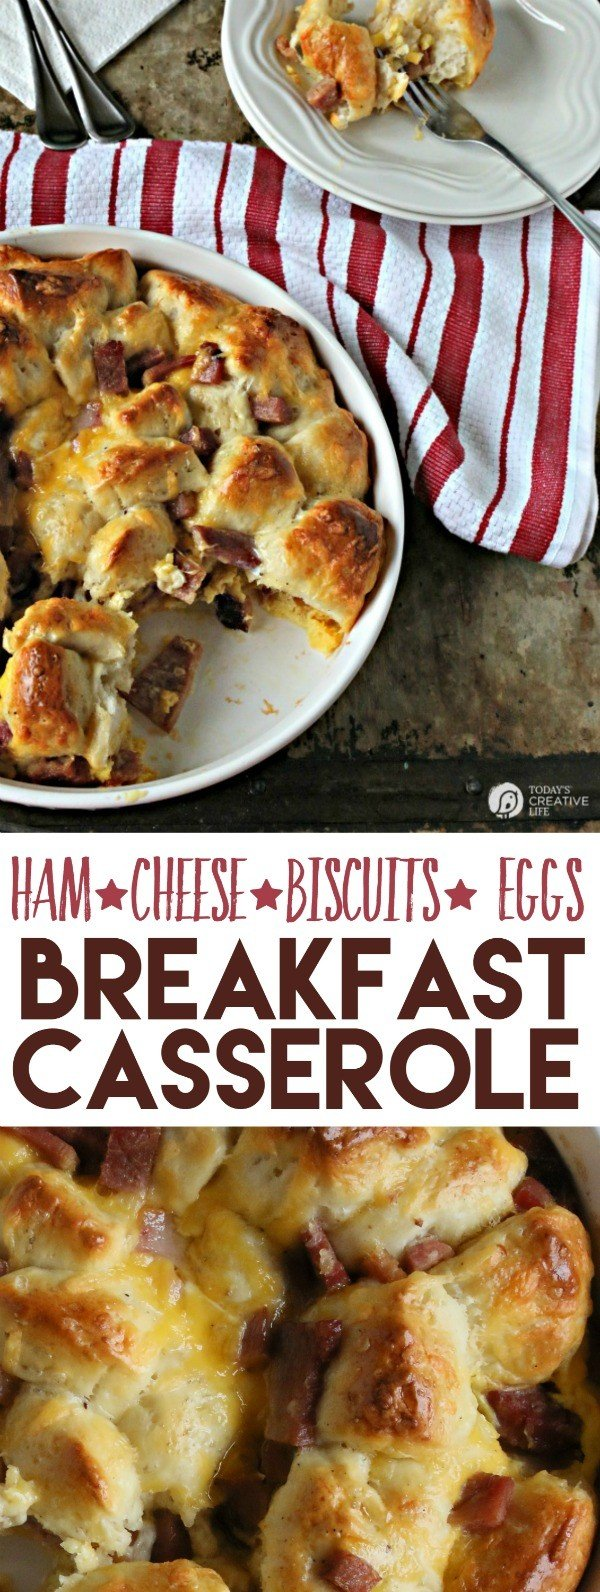 Egg pillsbury biscuit recipes